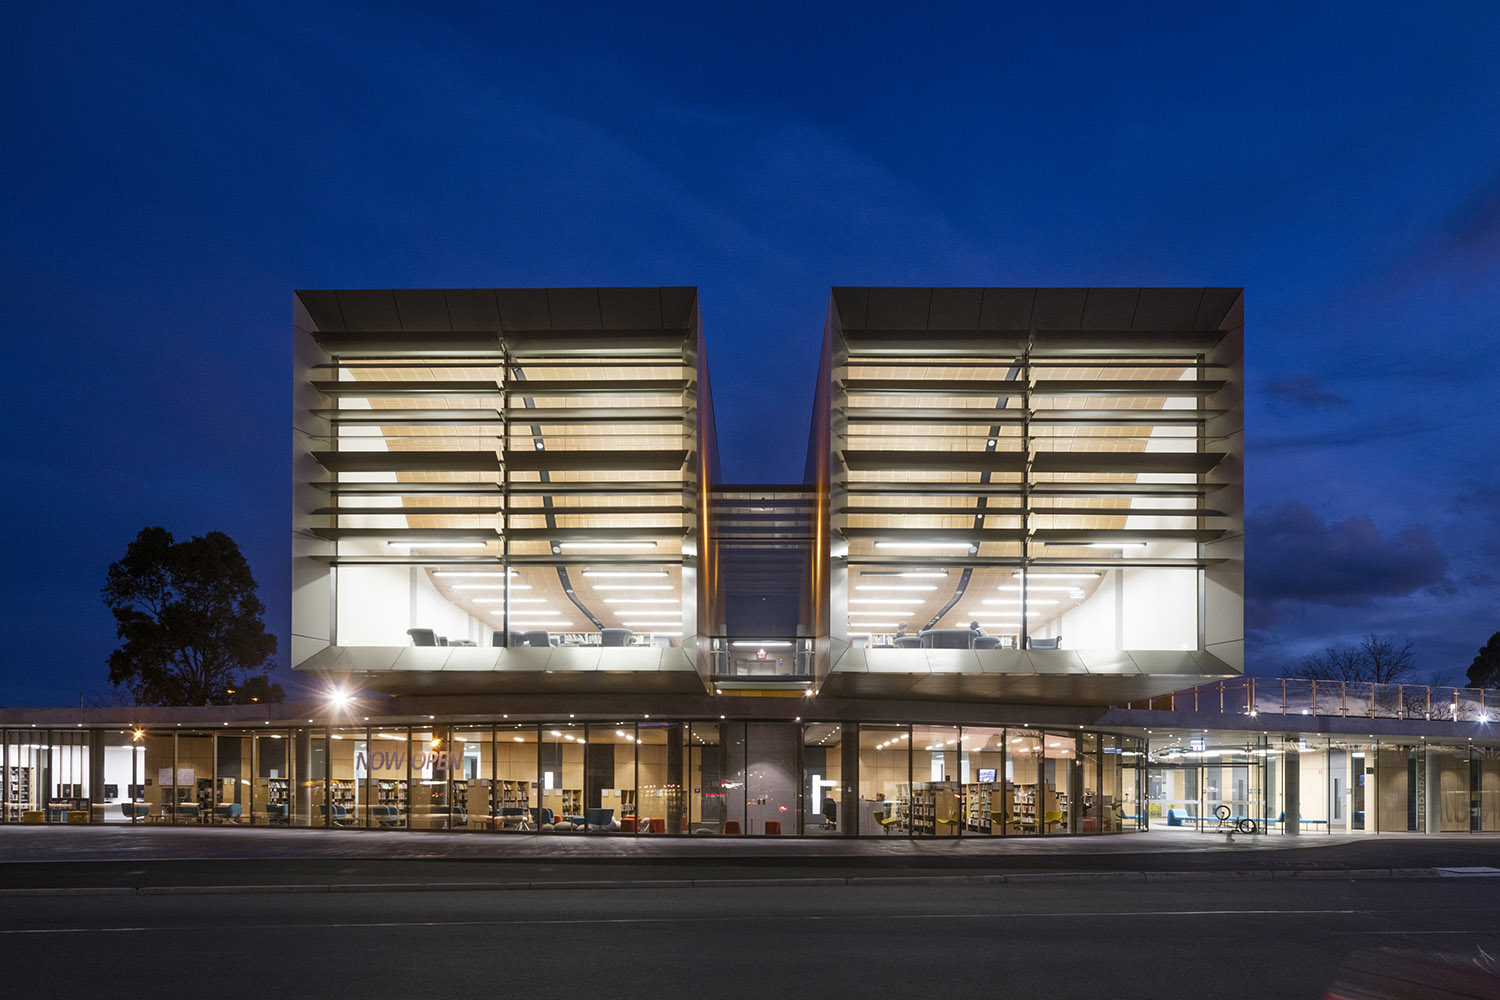 Two timber clad volumes are oriented directly down the main street forming a focus for this civic vista John Gollings